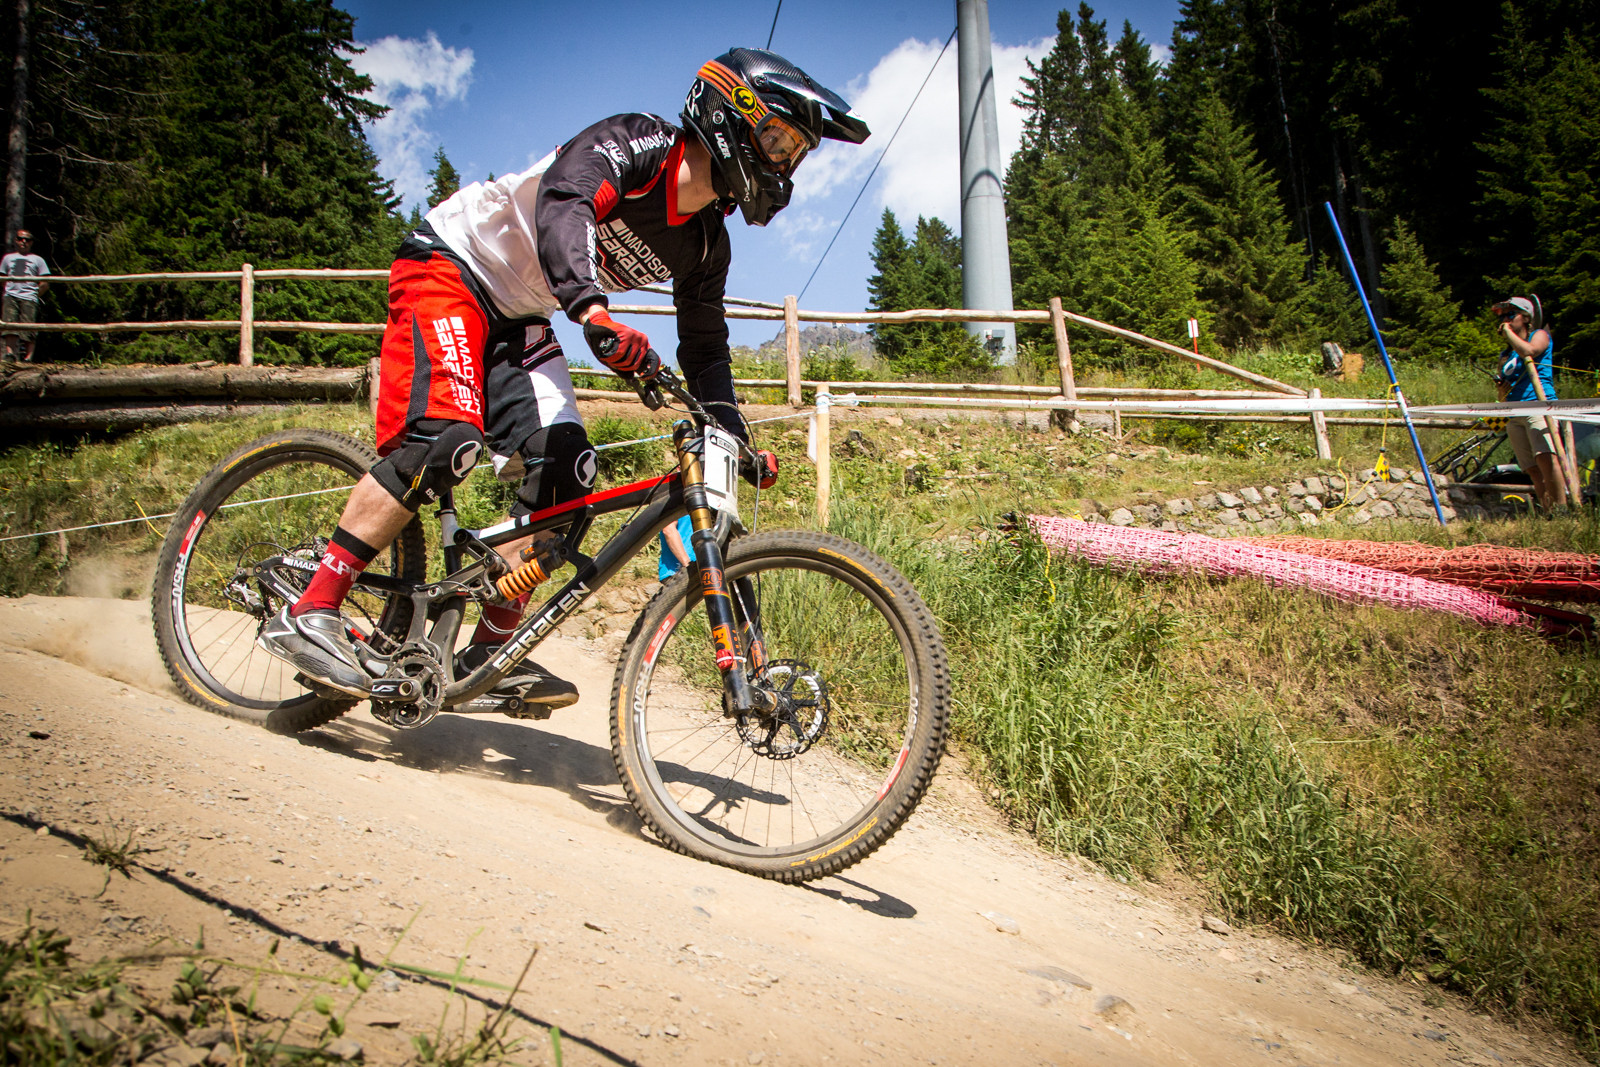 G-Out Project, Lenzerheide World Cup, Matt Simmonds - G-Out Project - Lenzerheide World Cup - Mountain Biking Pictures - Vital MTB